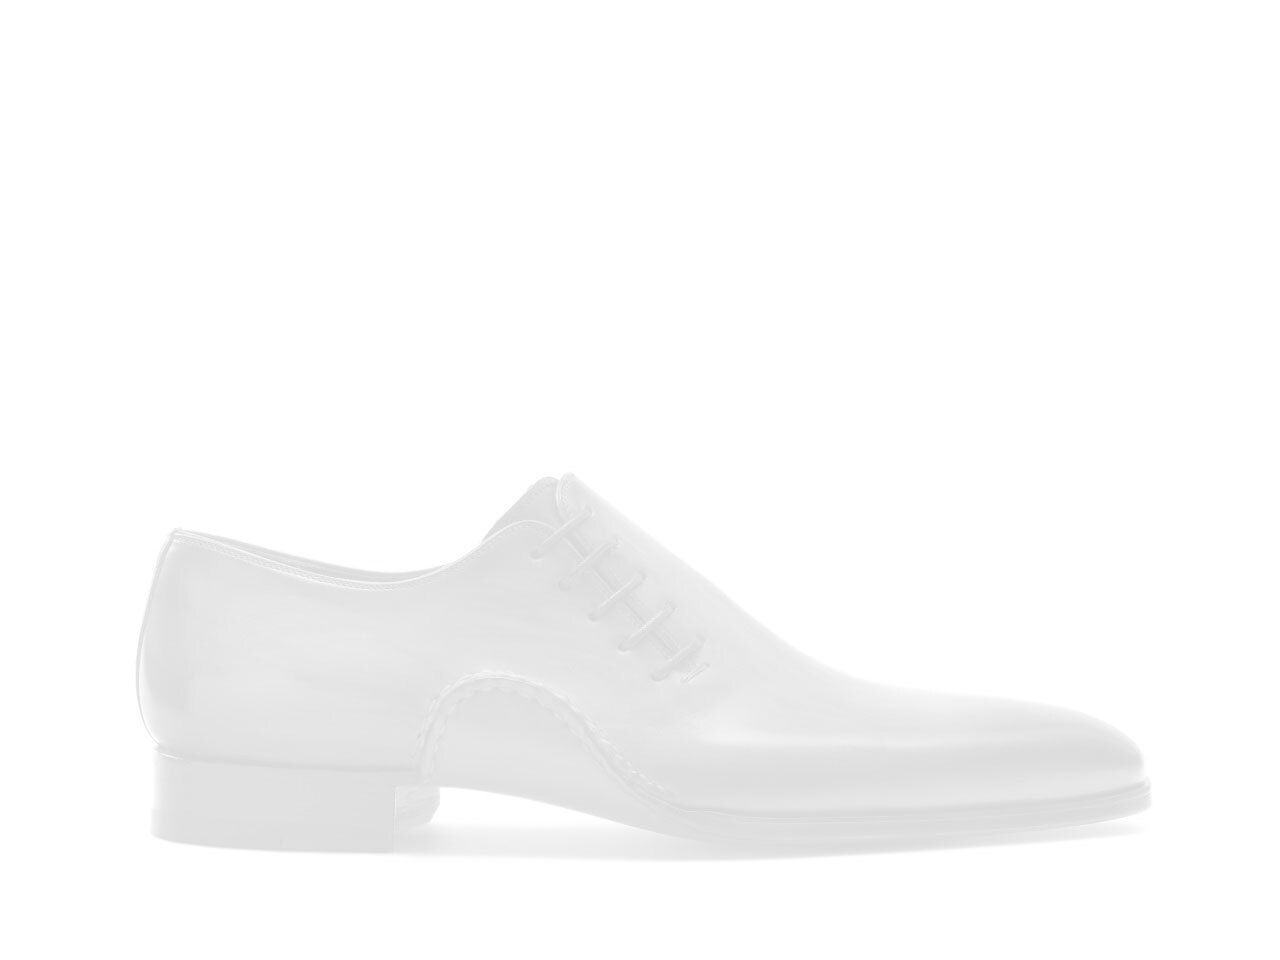 Sole of the Magnanni Reina Tinto Men's Sneakers